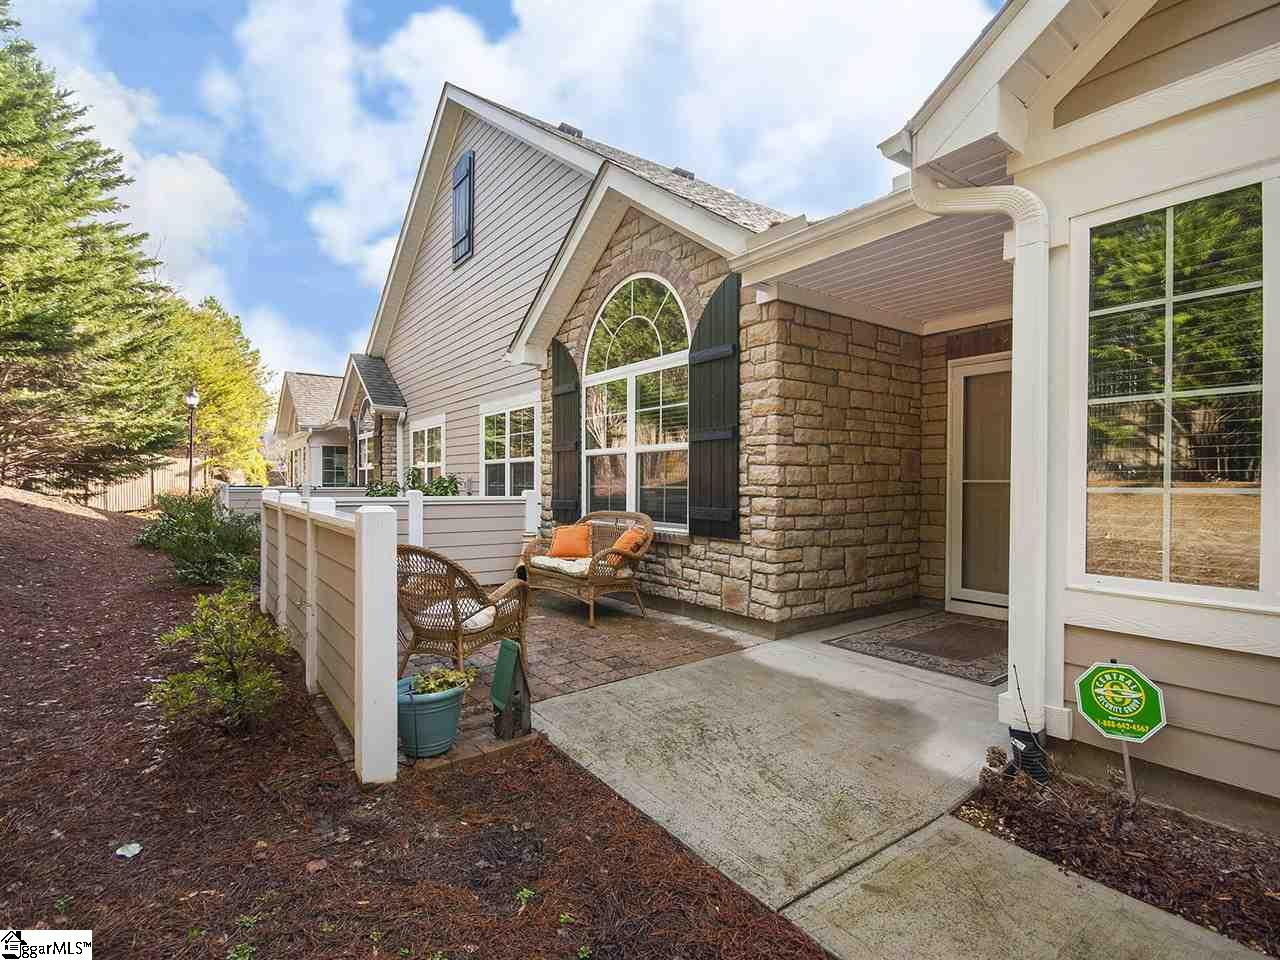 215 Sunset Glory Greenville, SC 29617